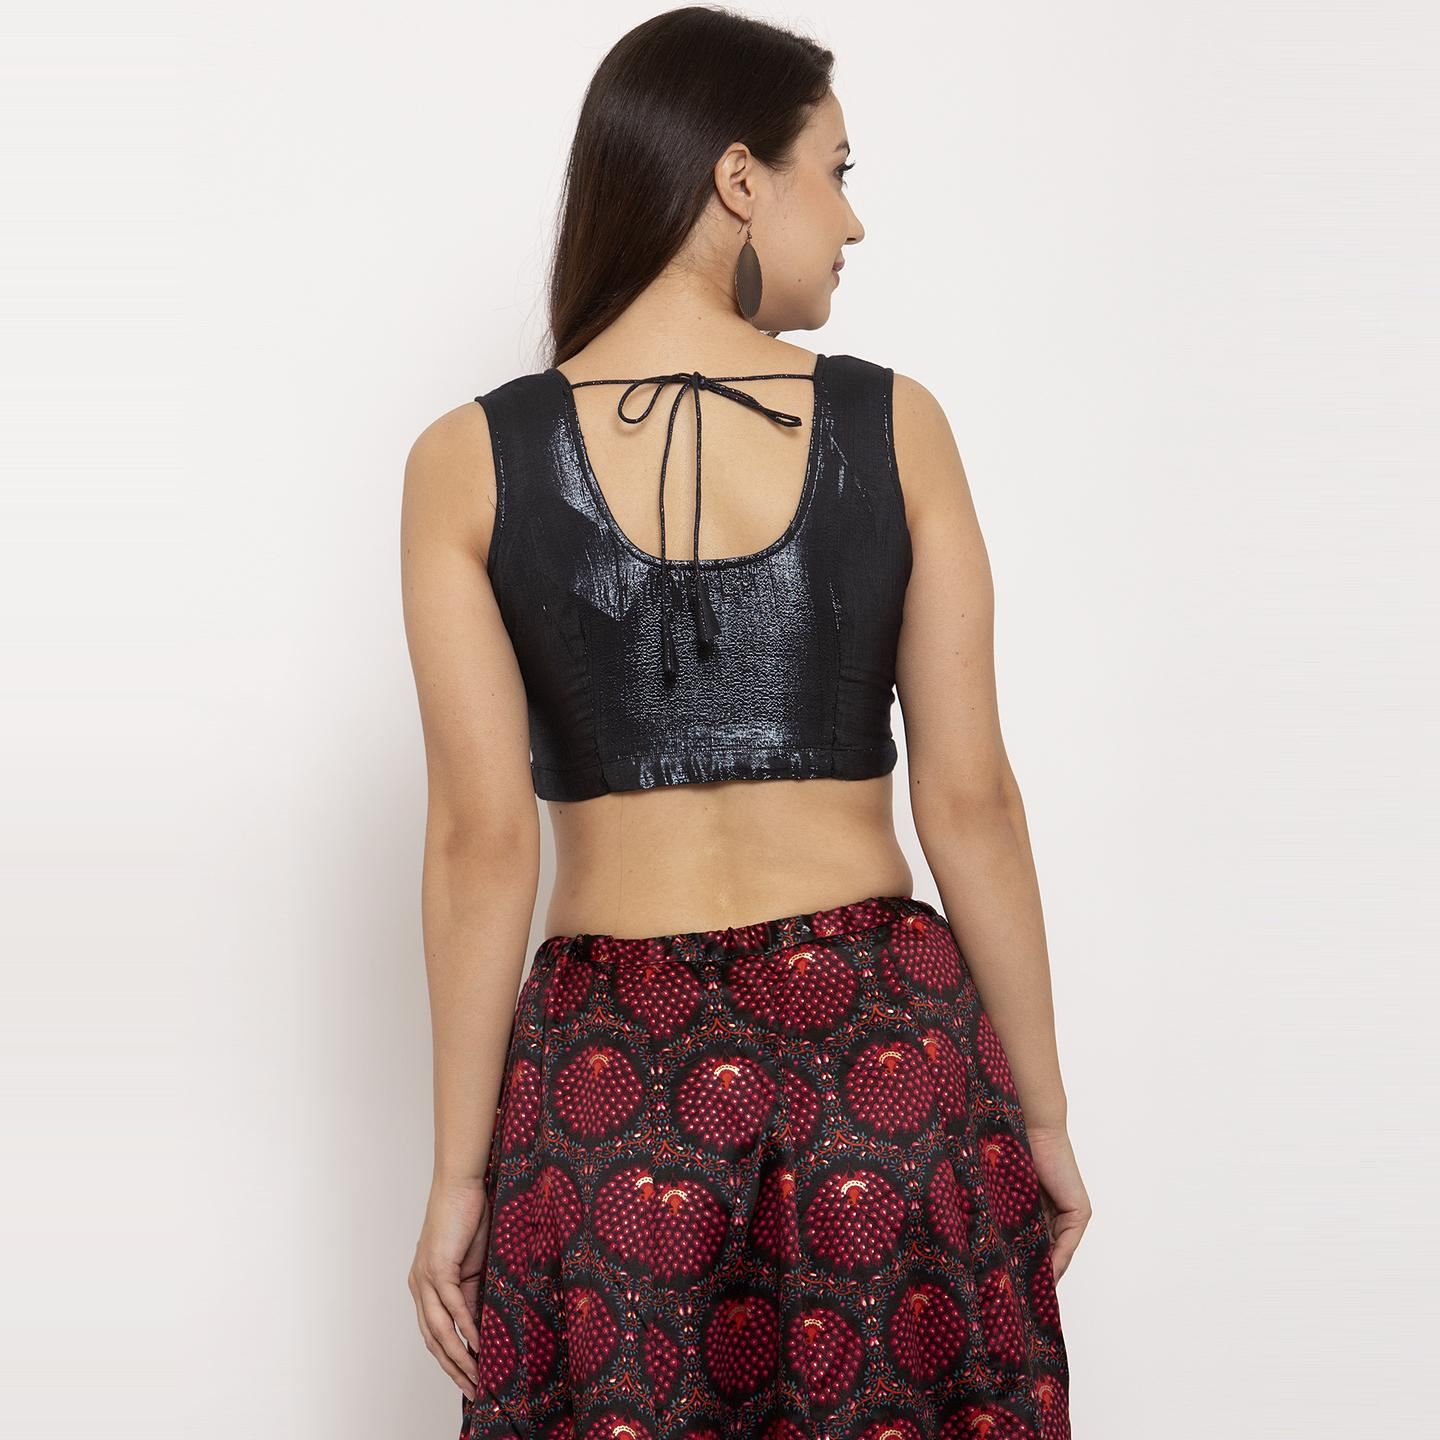 Ayaany - Black Colored Casual Wear Cotton Blouse